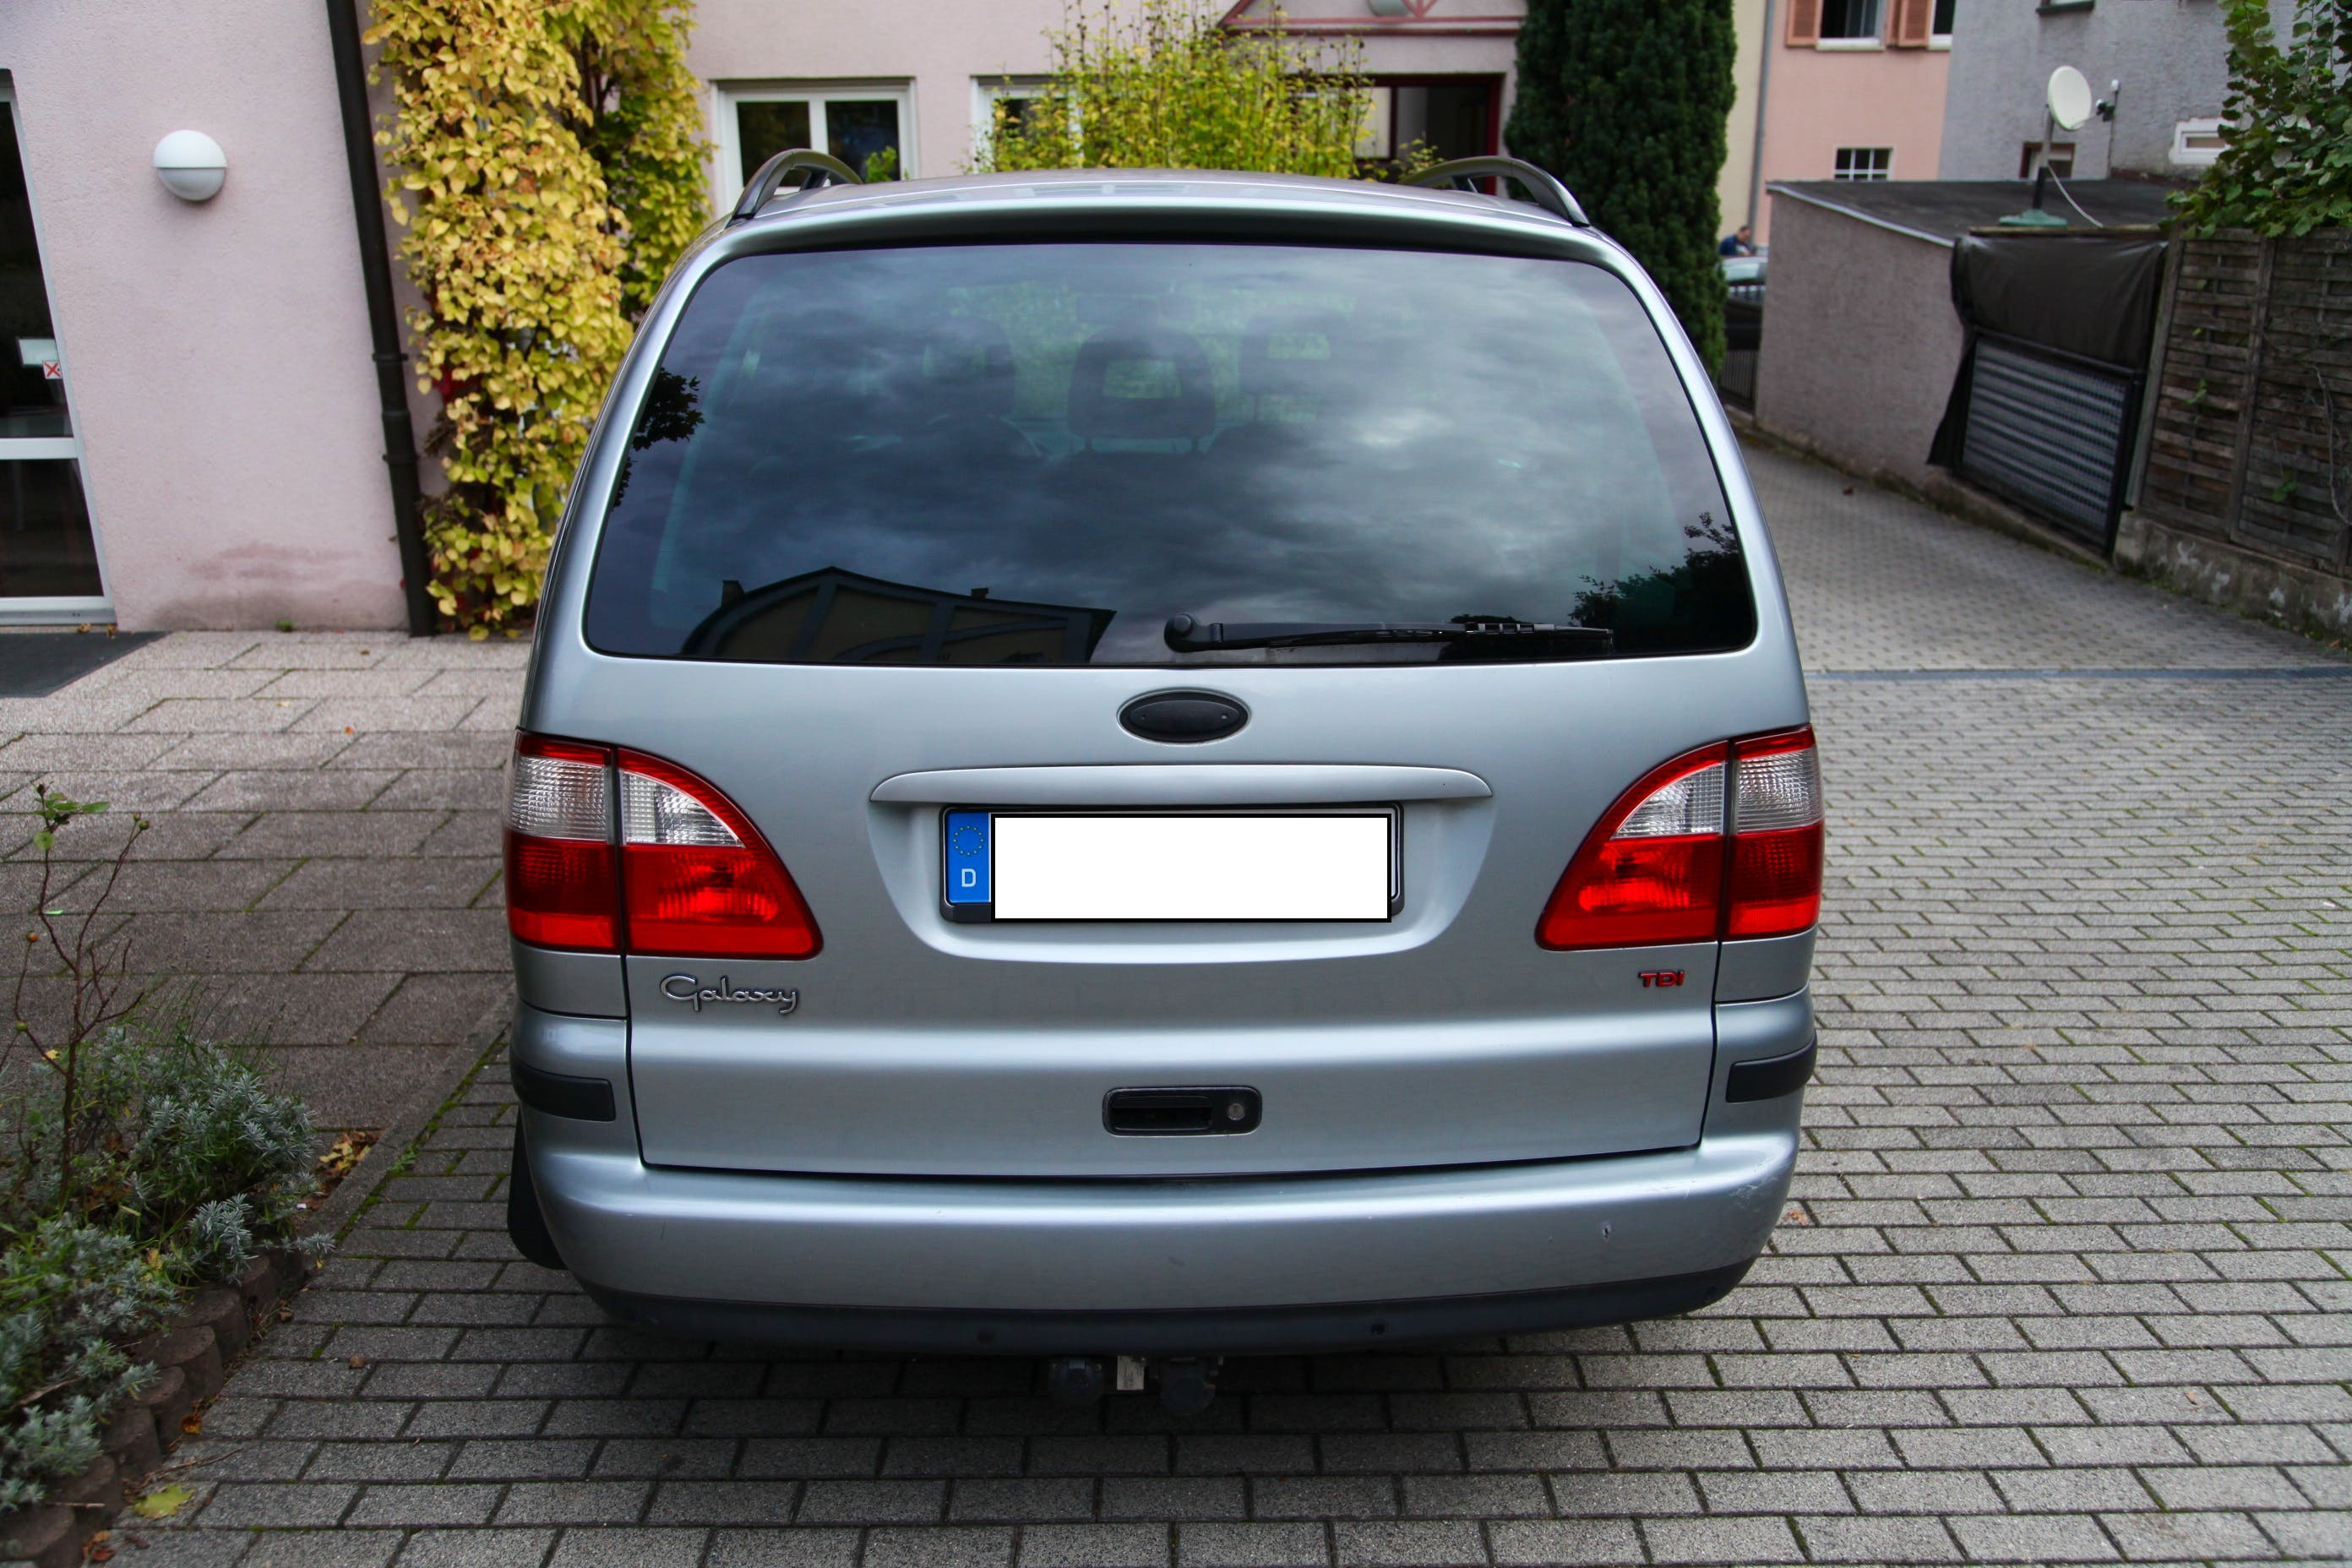 Ford Galaxy 1.9 TDI mit Kindersitz